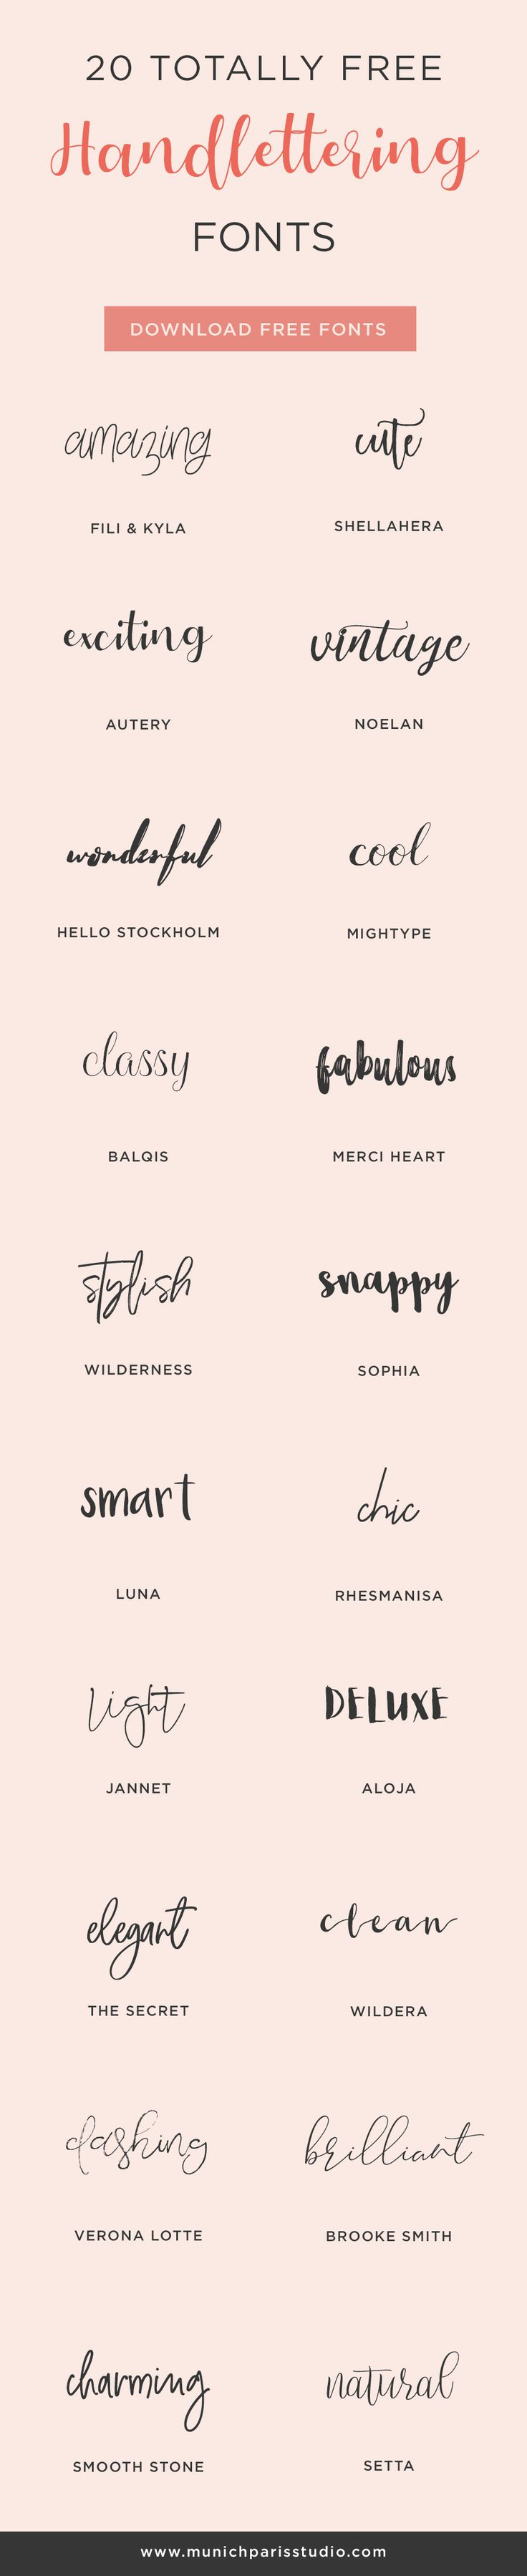 20 FREE Handwriting Fonts for personal and commercial use